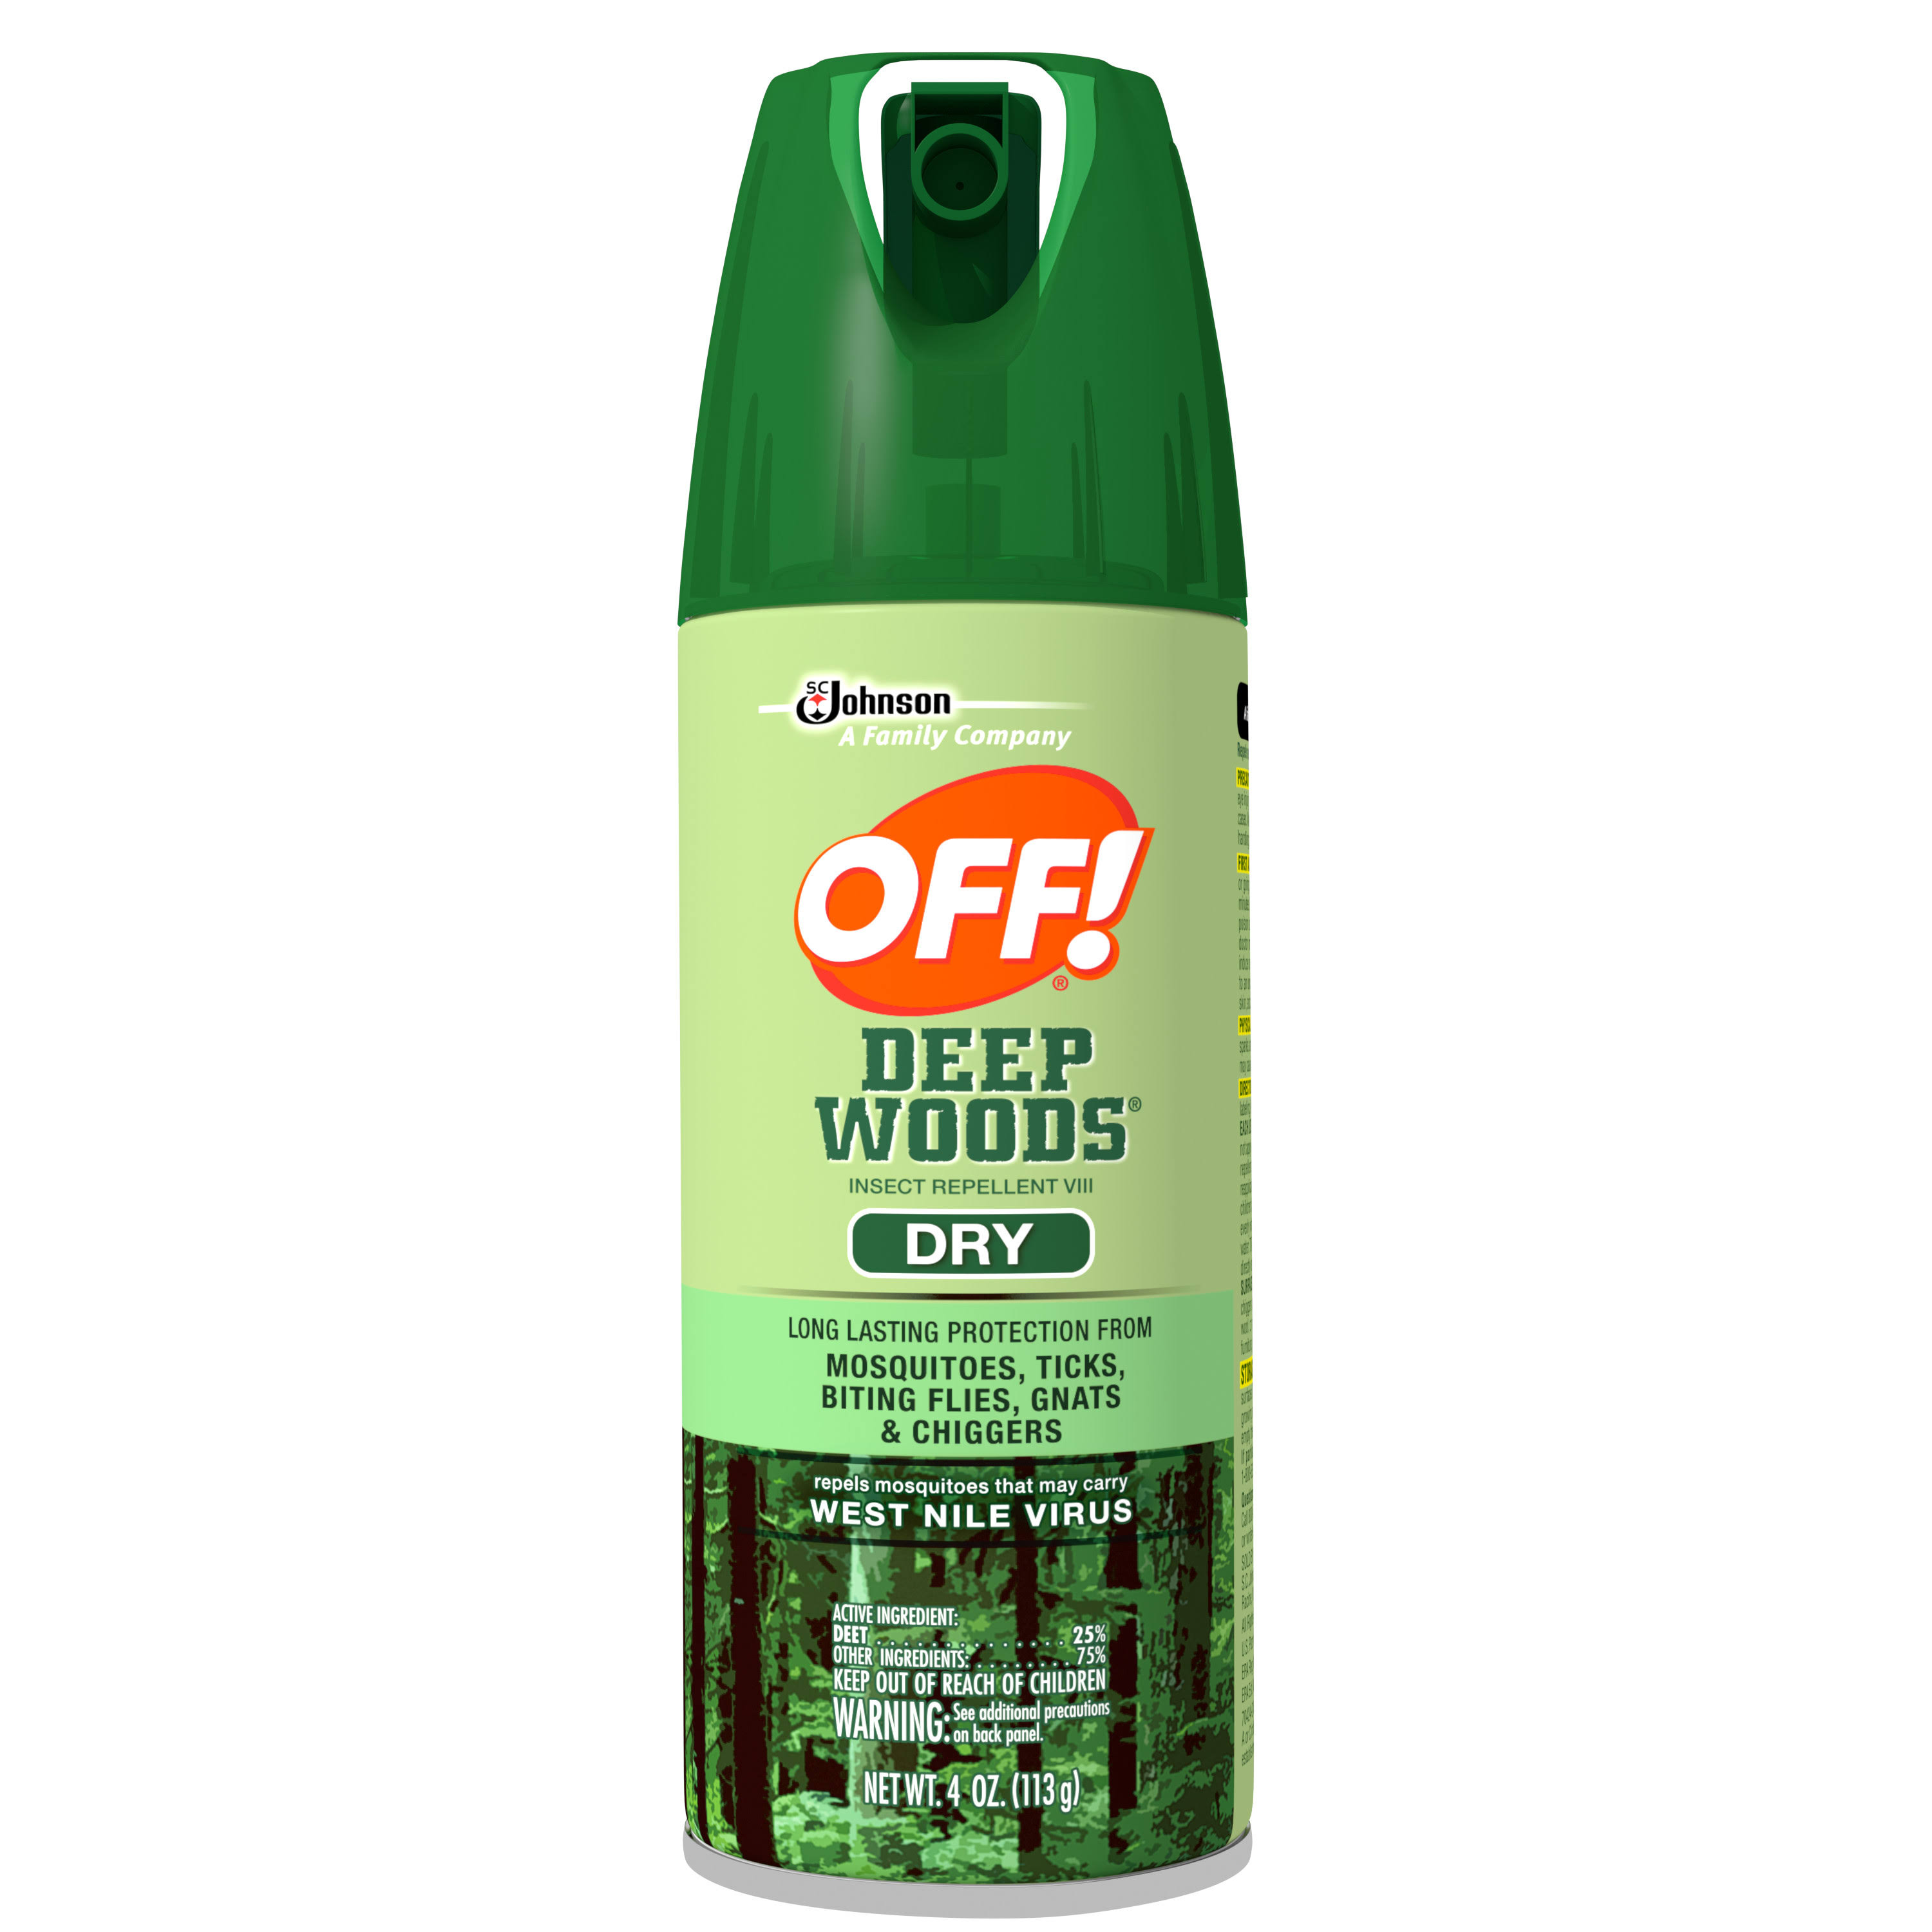 SC Johnson Off! Deep Woods Insect Repellent - Dry, 4oz